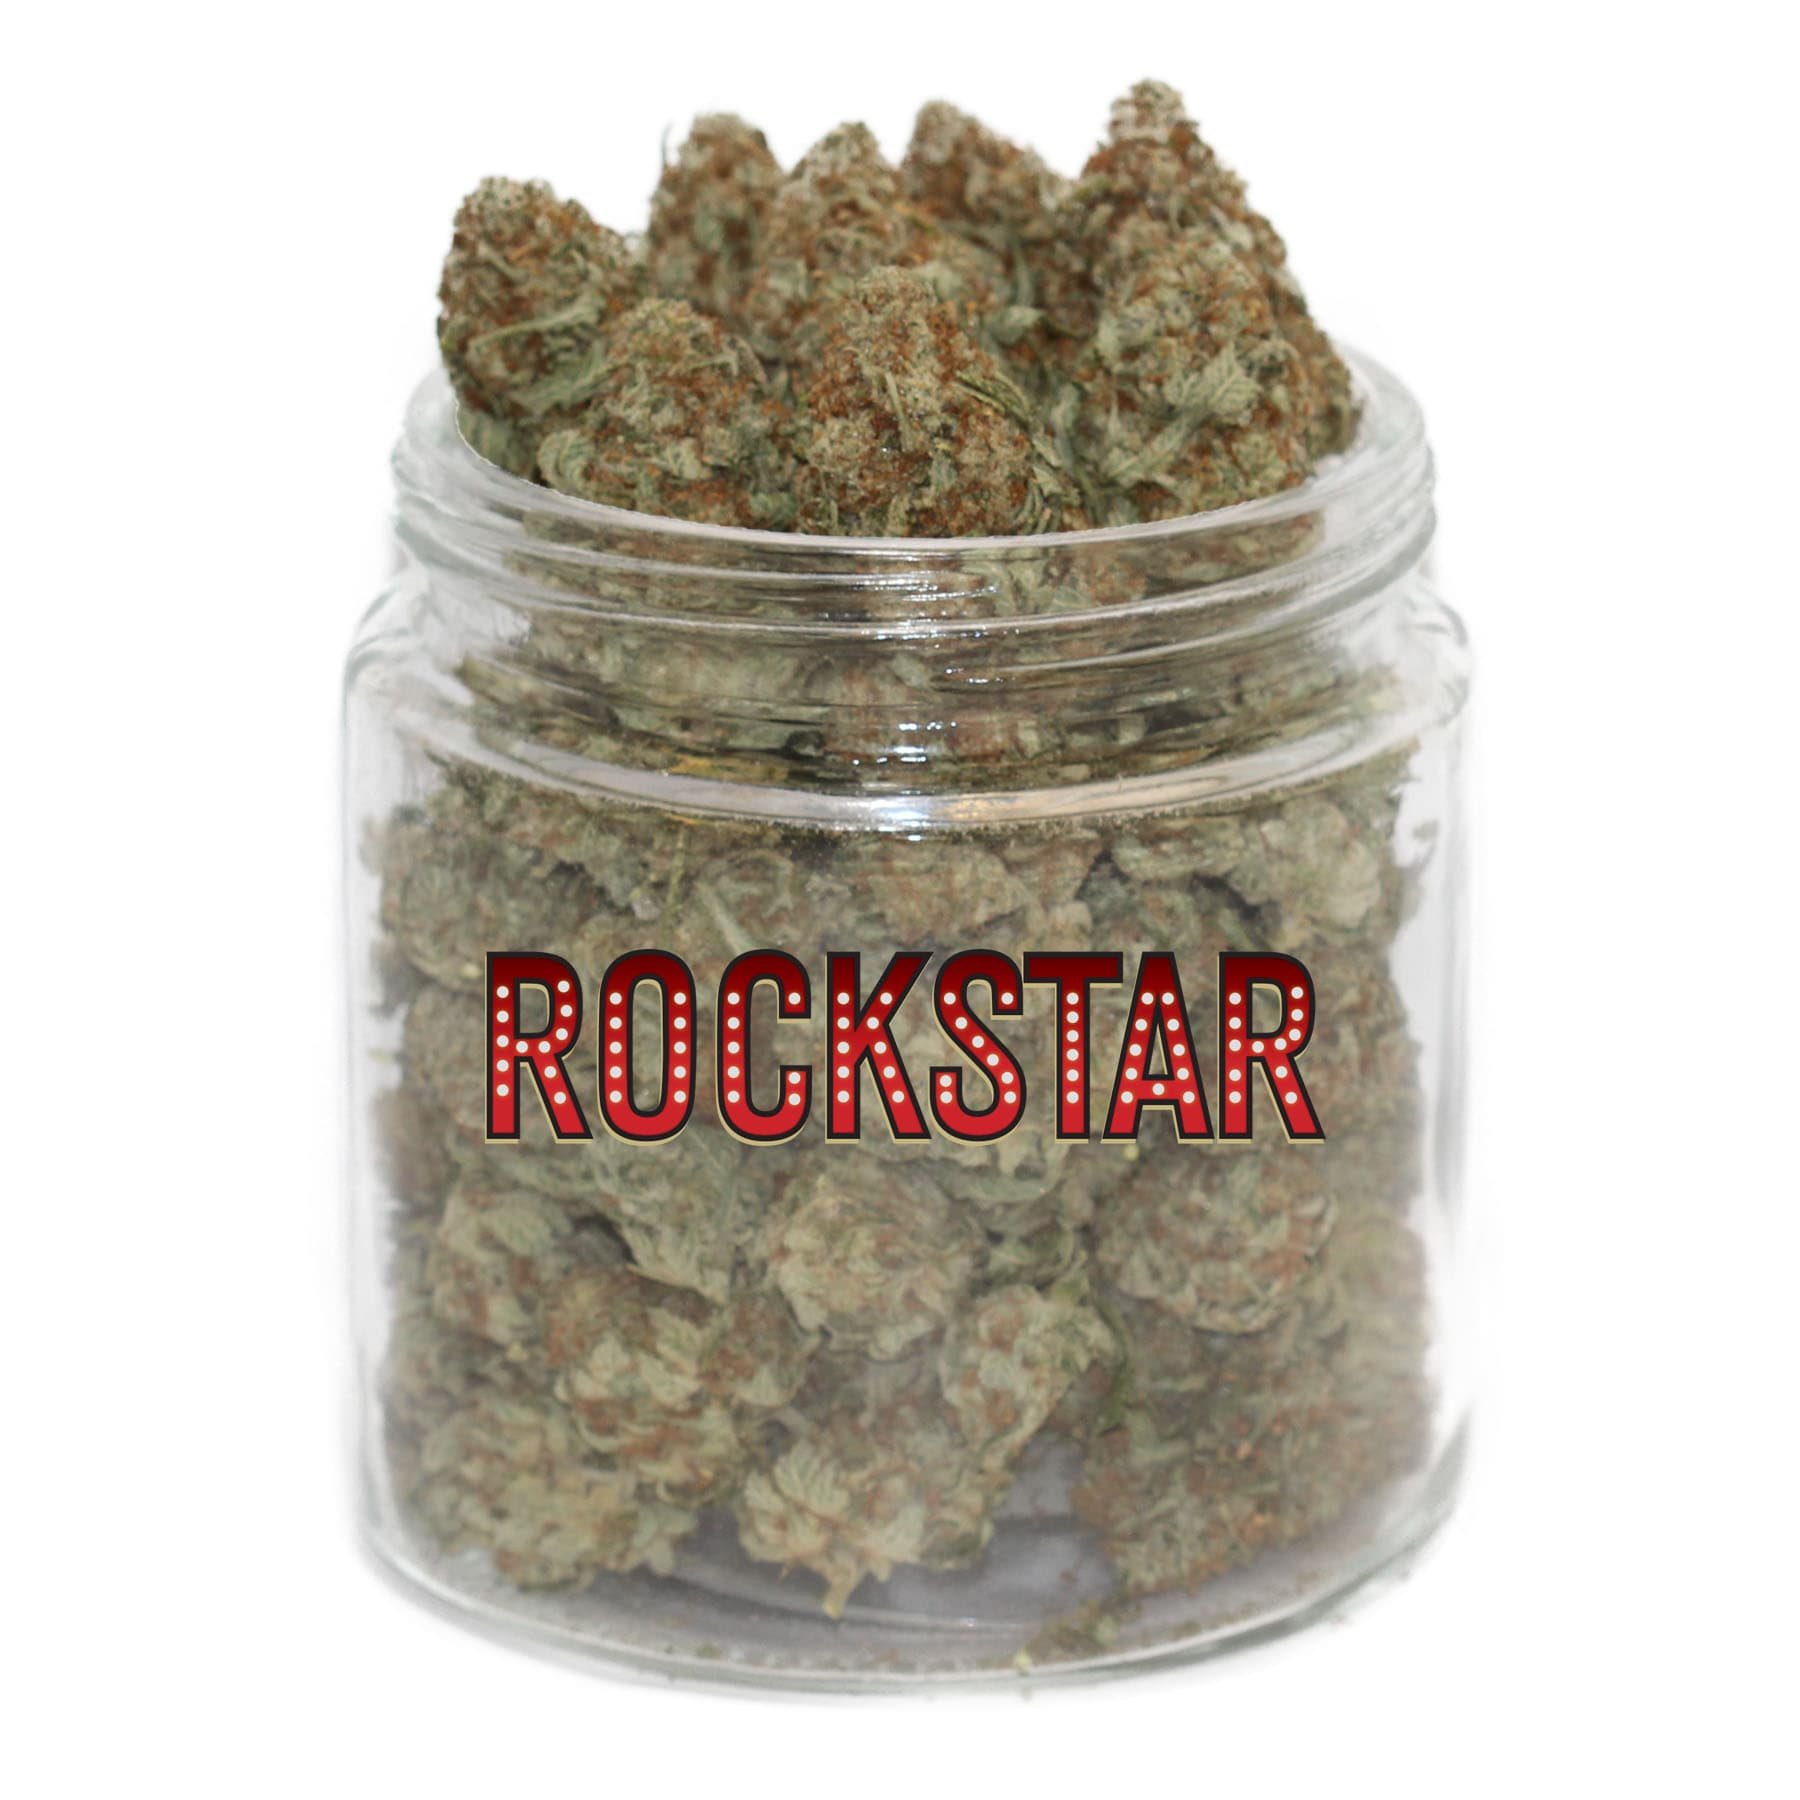 Rockstar by Get Kush - Image © 2018 Get Kush. All Rights Reserved.